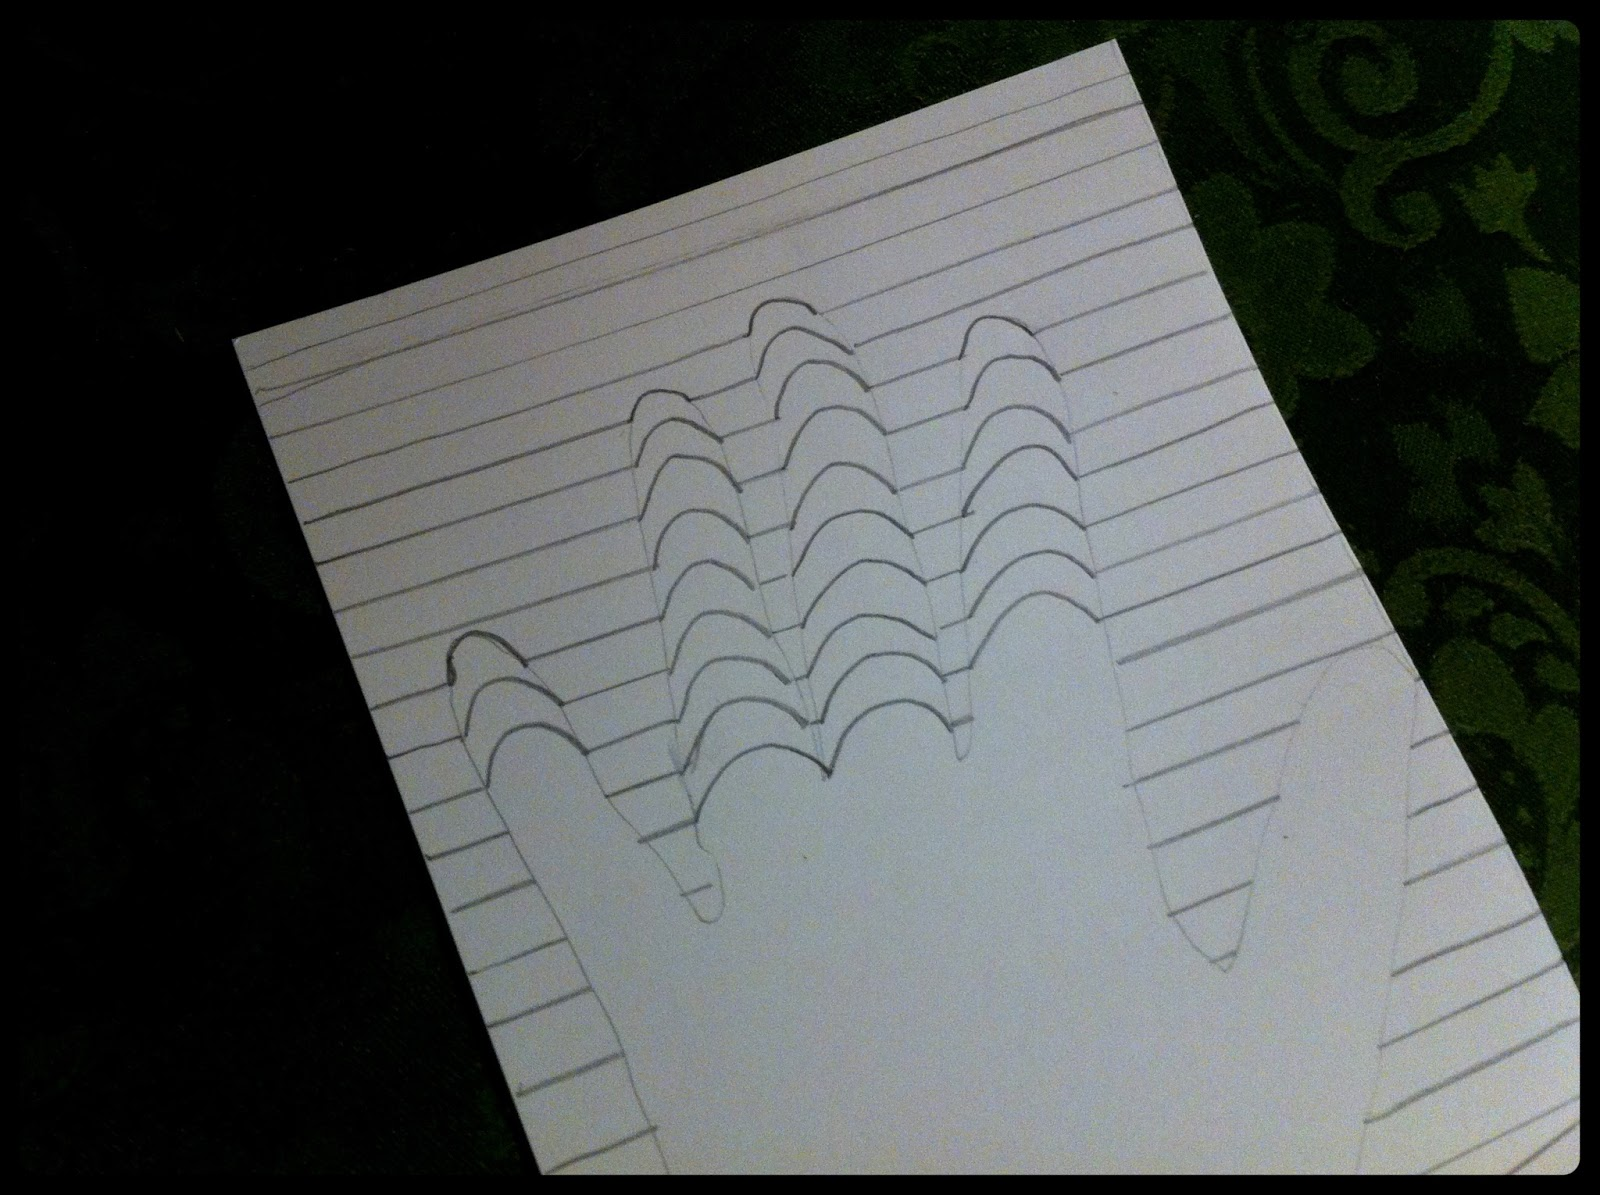 illusion optical hand lines paper drawing draw line curved box crayon hands note into